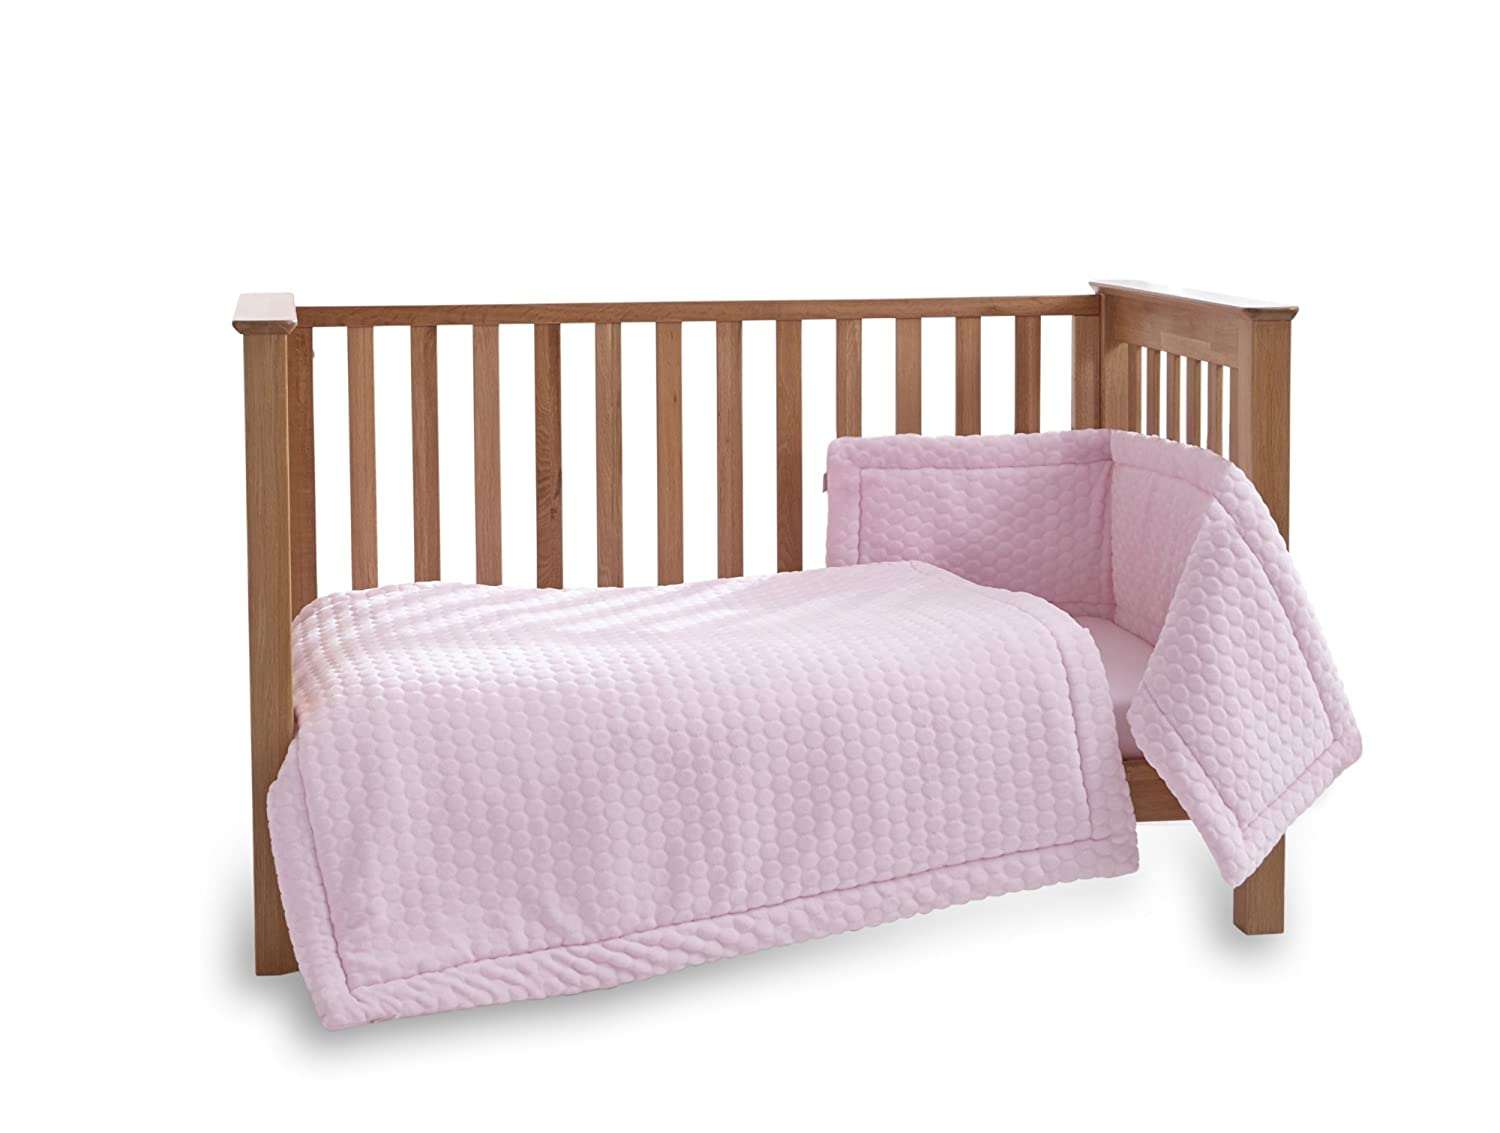 Clair de Lune Marshmallow 3 Piece Cot/Cot Bed Quilt & Bumper Bedding Set - Pink CL5174P